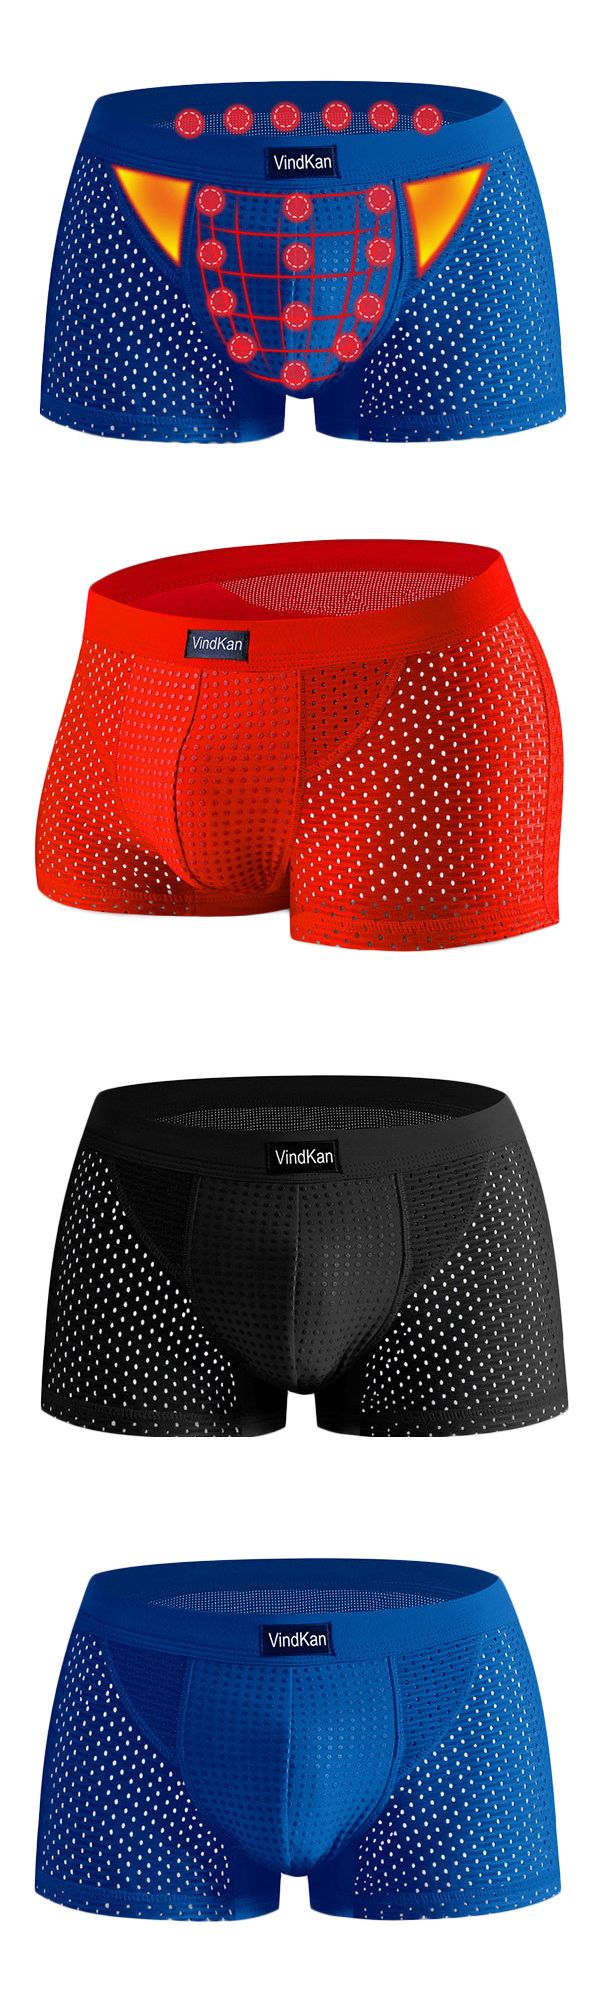 US$10.99 + Free shipping. Men's mesh underwear, magnet antibacterial modal u convex pouch breathable boxers underwear.